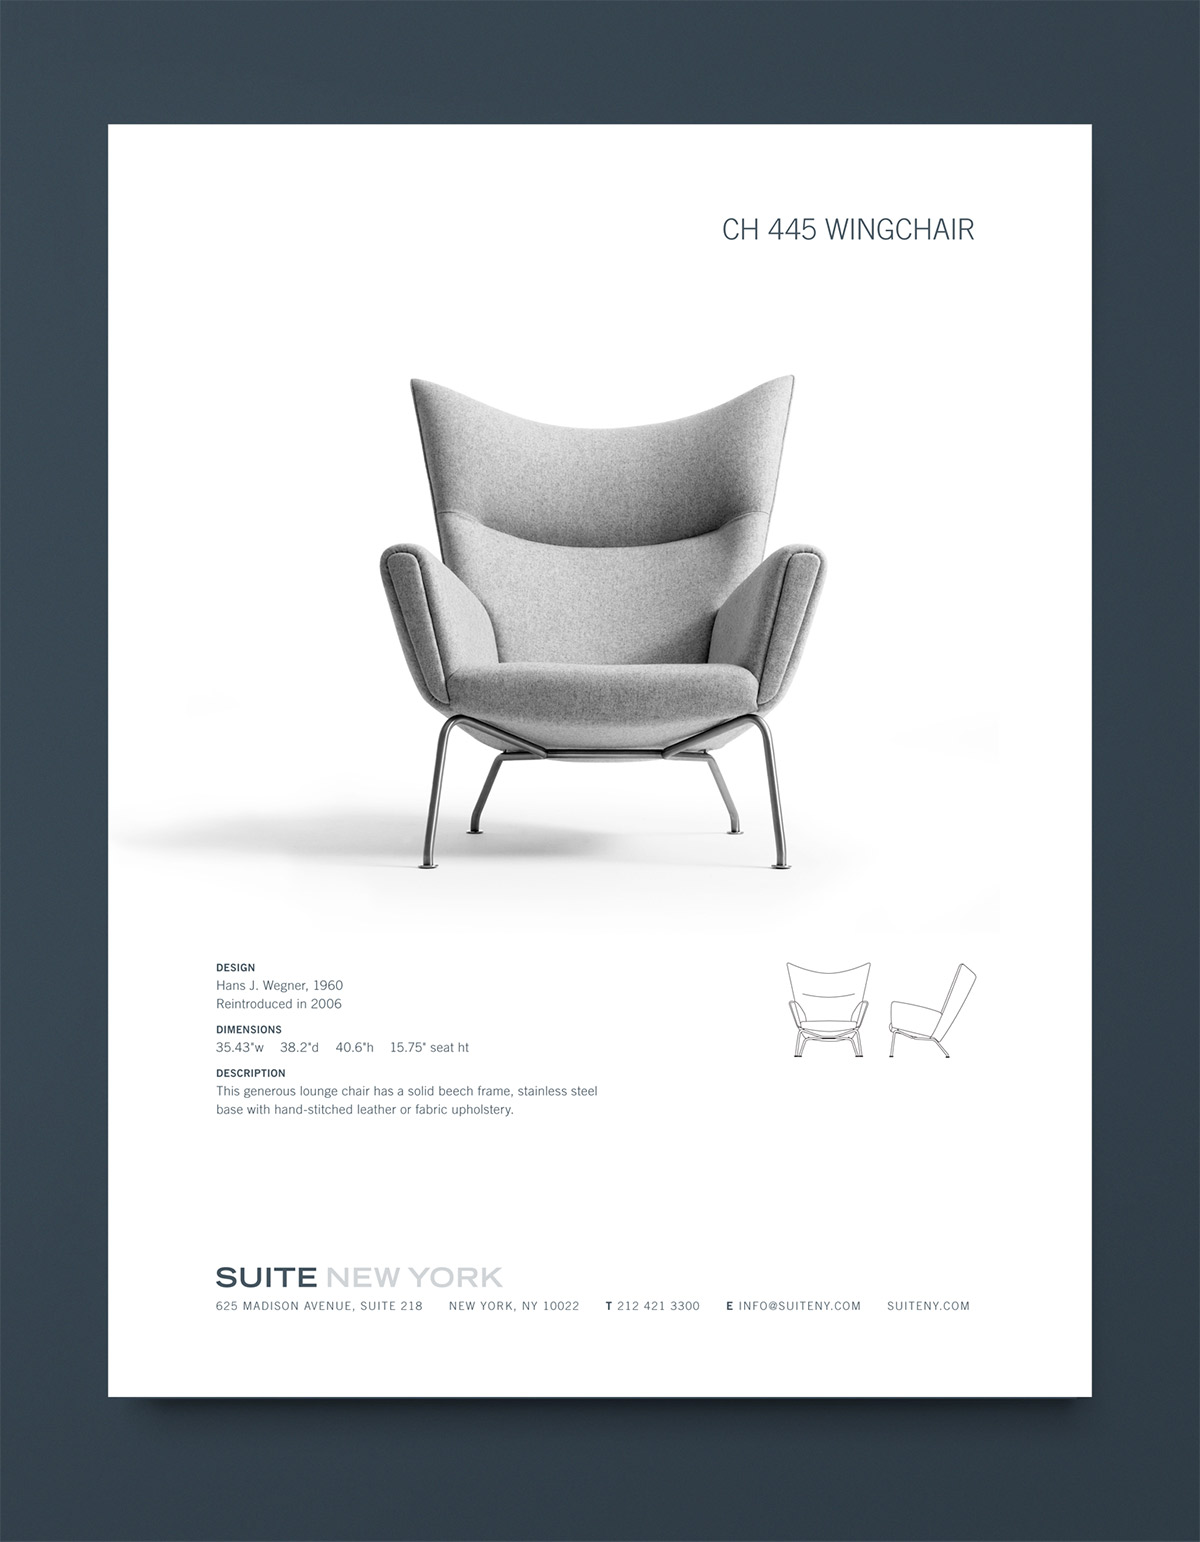 Suite NY Catalog Wingchair